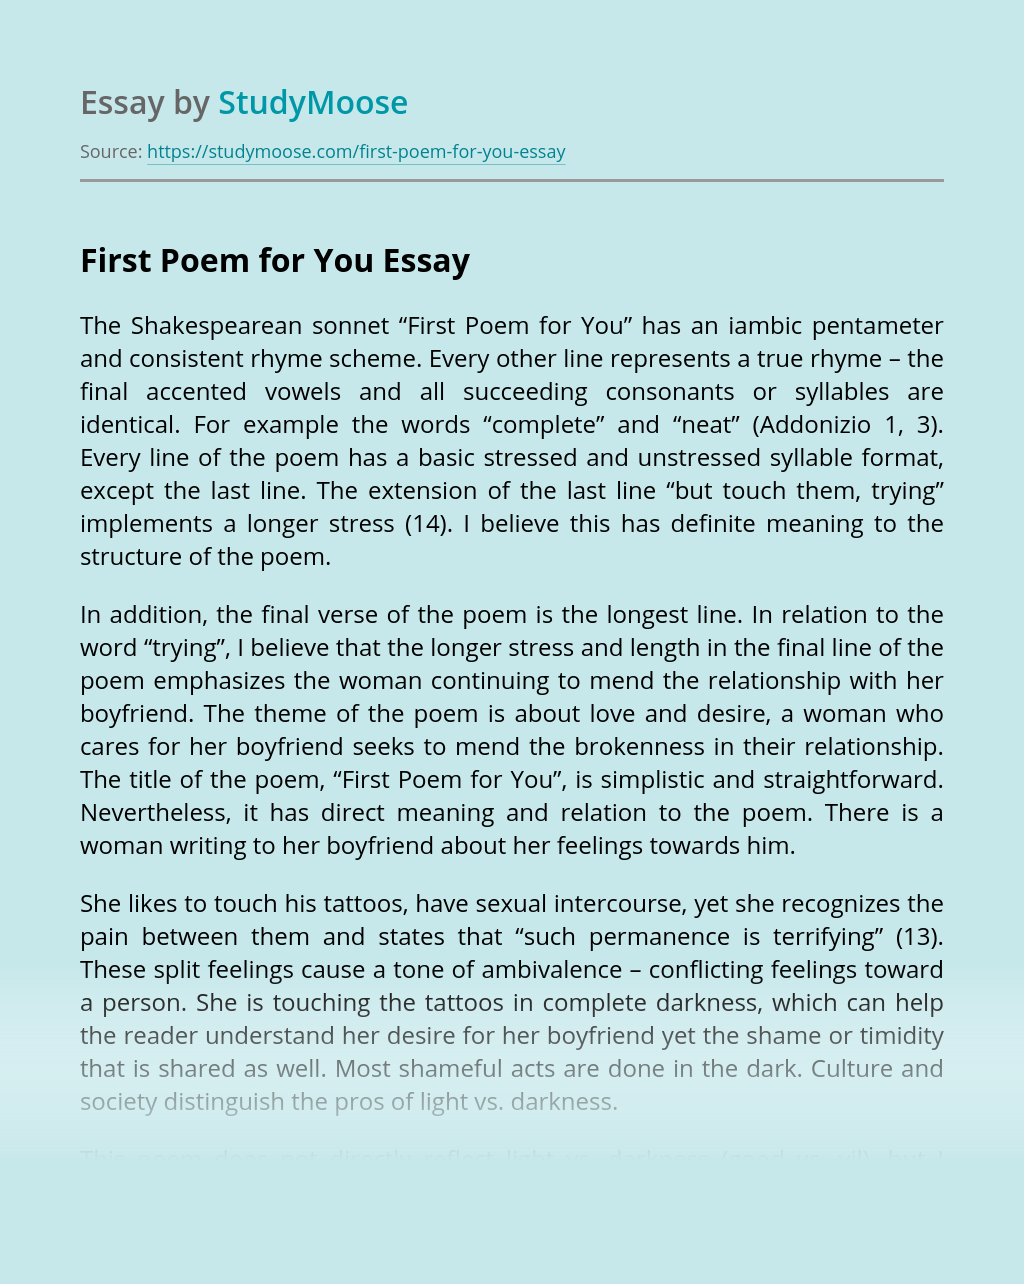 First Poem for You